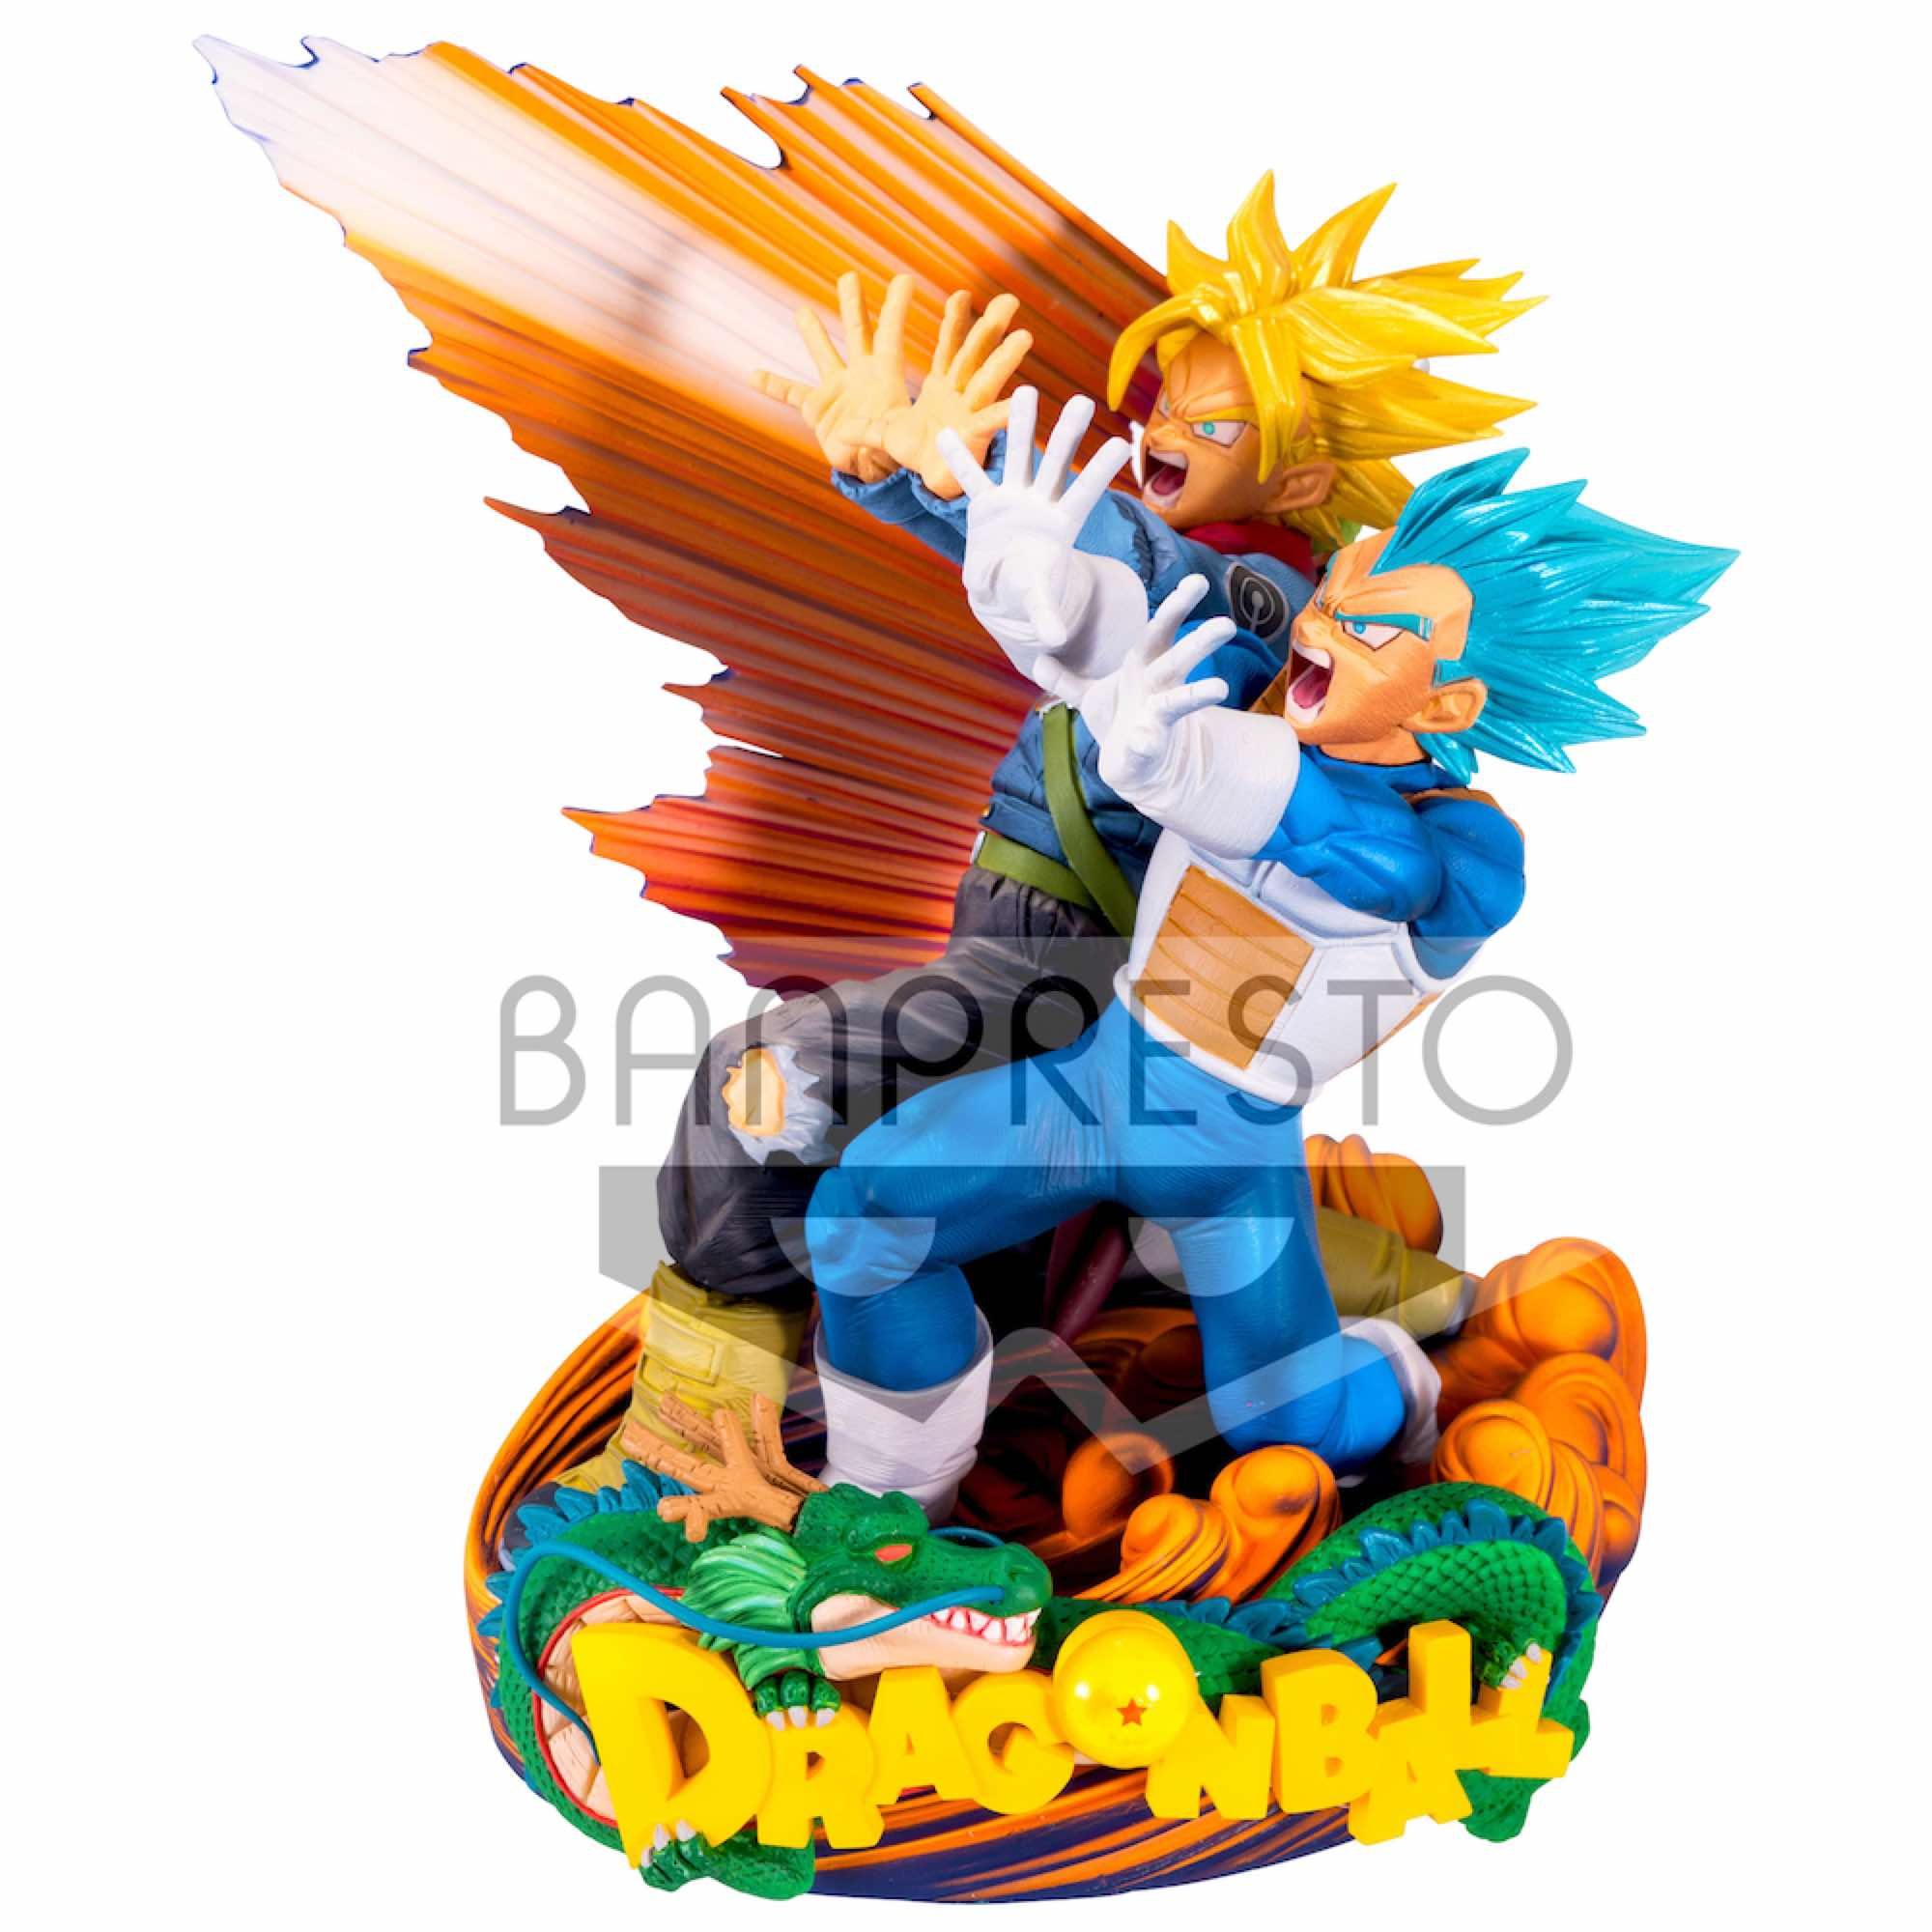 VEGETA & TRUNKS FIGURA 18 CM DRAGON BALL SUPER MASTER STAR DIORAMA